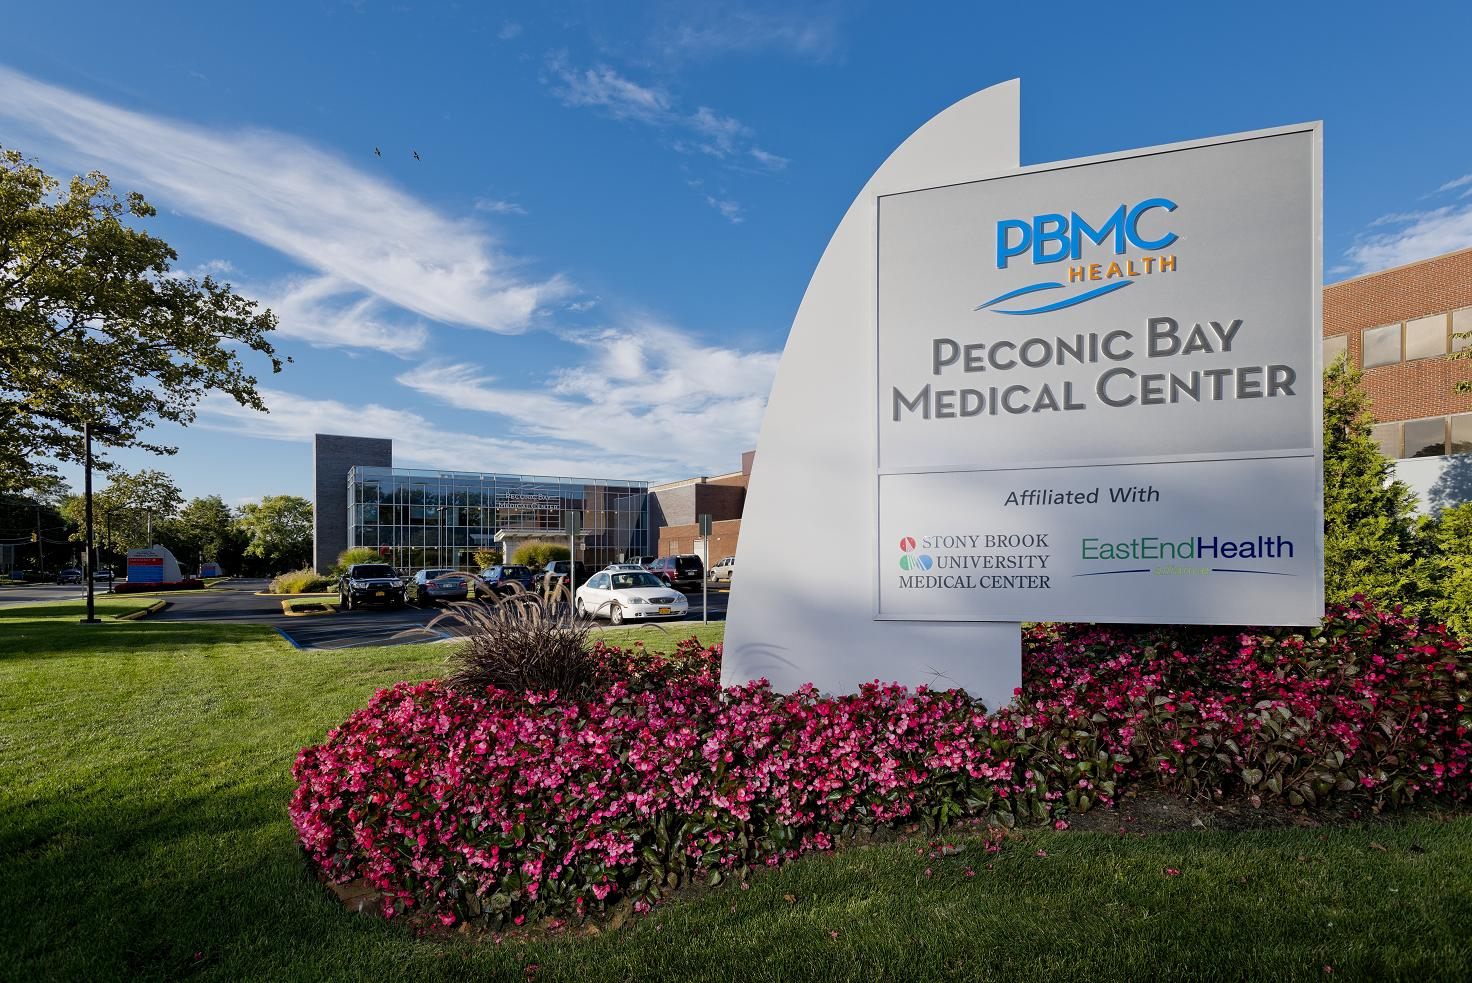 PBMC Health Sign on Circle